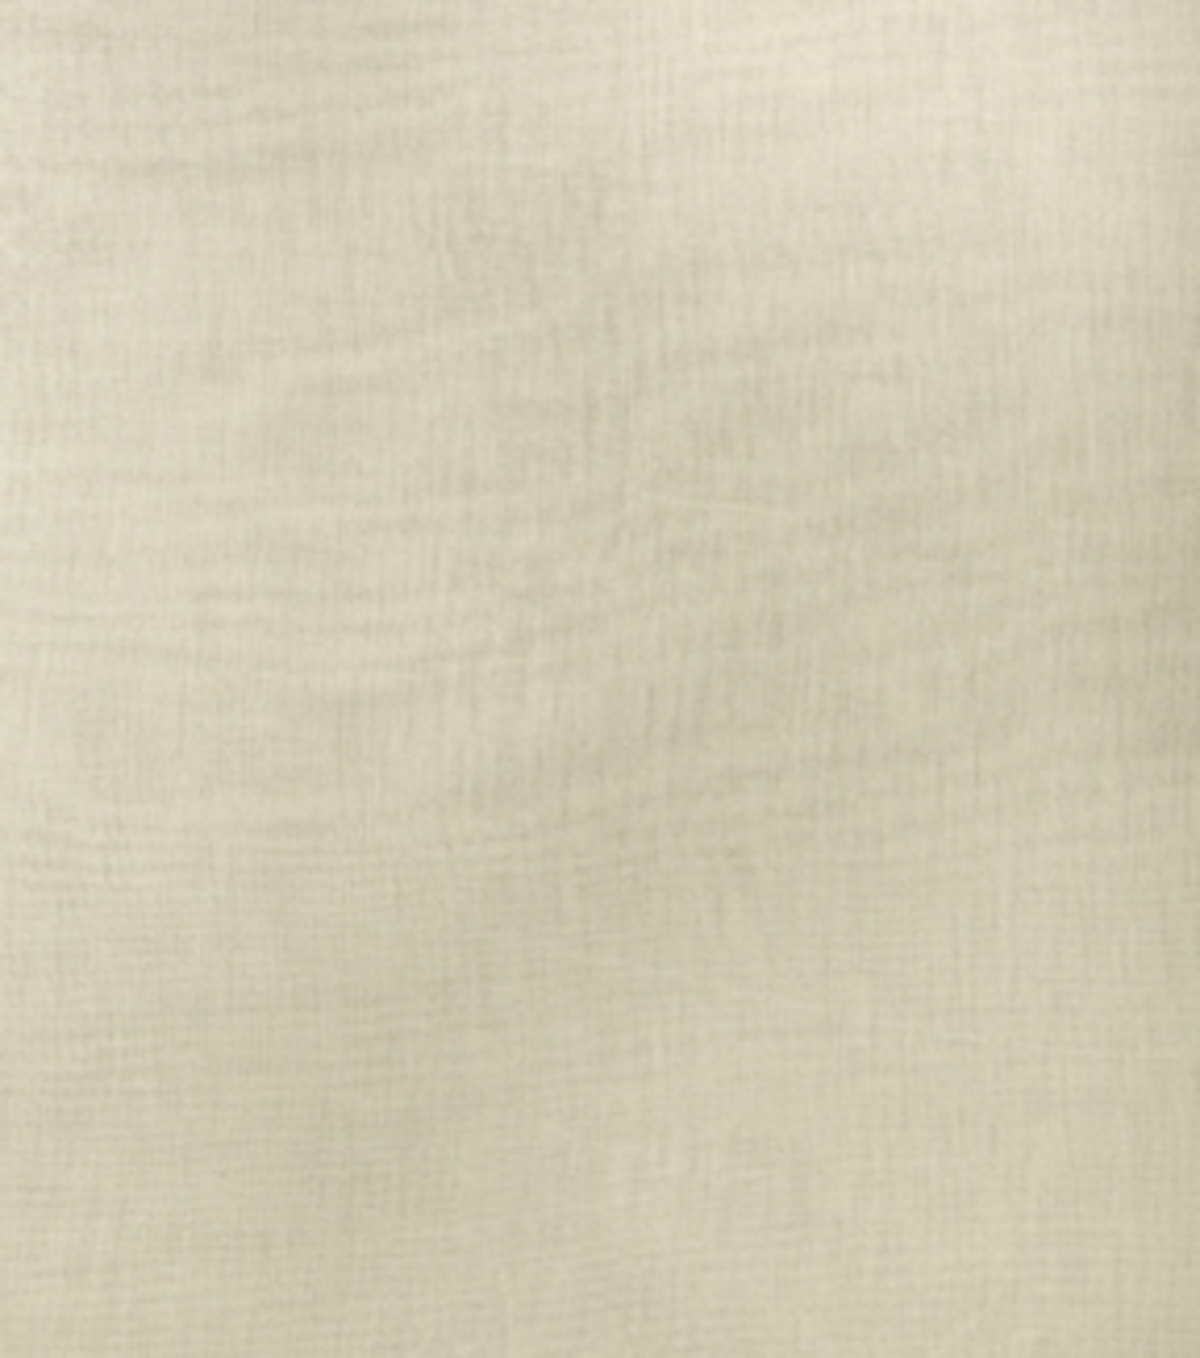 Home Decor 8\u0022x8\u0022 Fabric Swatch-Sheer Fabric SMC Designs Apache Alabaster